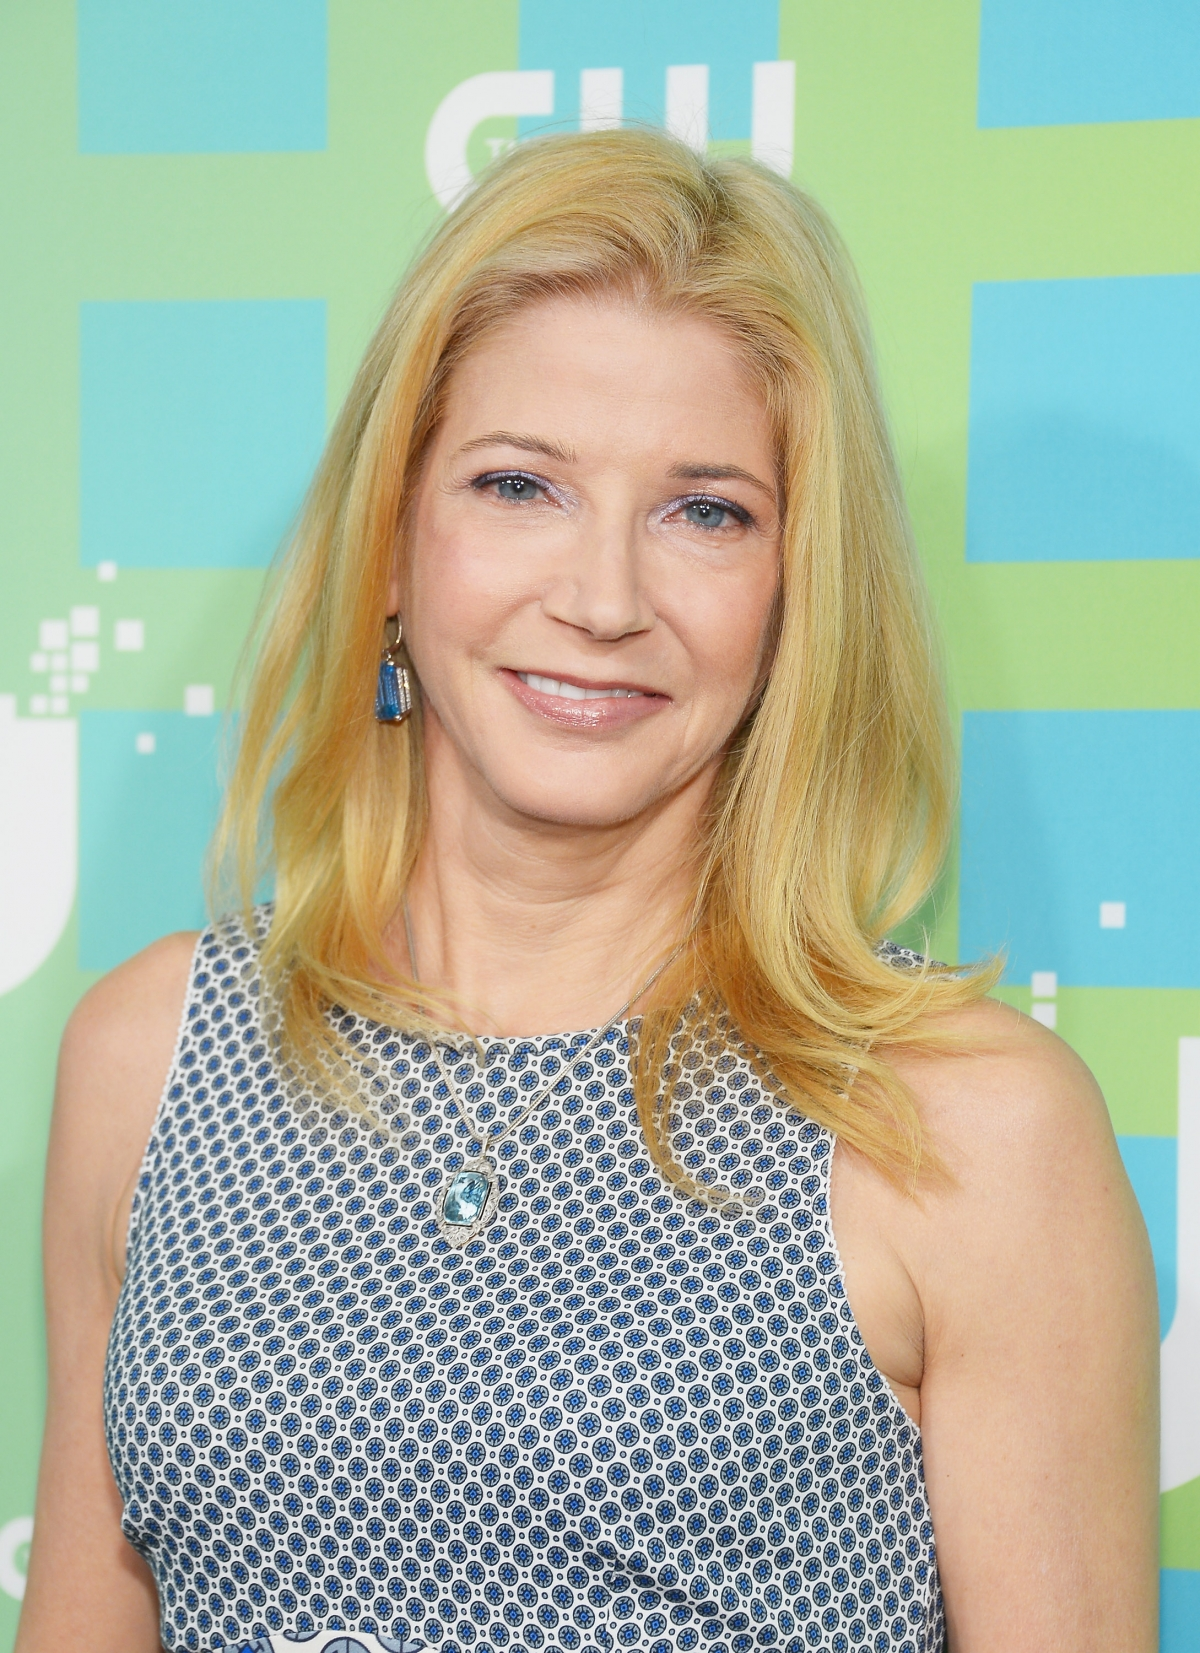 Candace bushnell sex and the city writer recalls behind the scenes